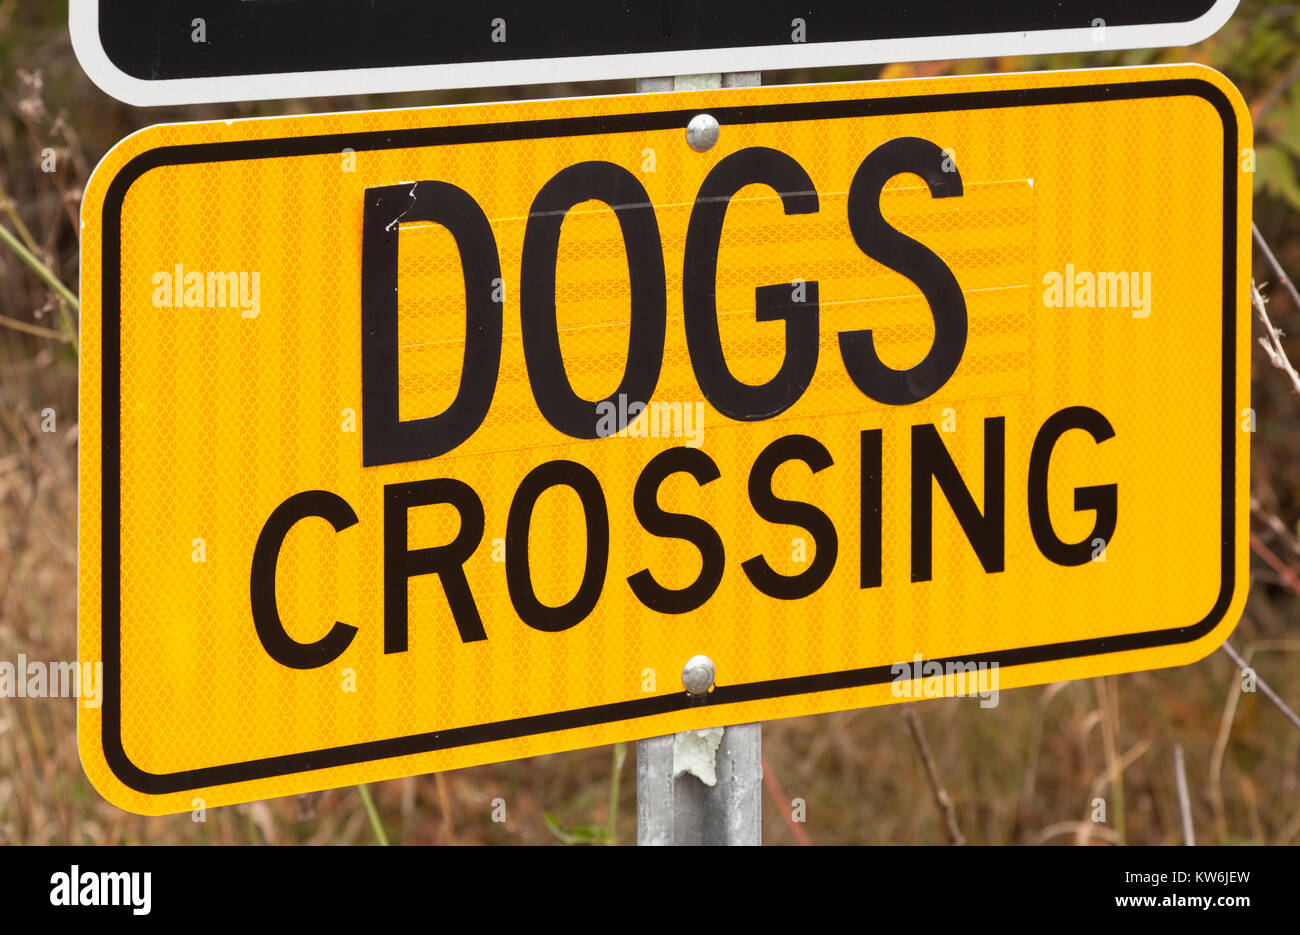 A reflective dogs crossing sign. - Stock Image